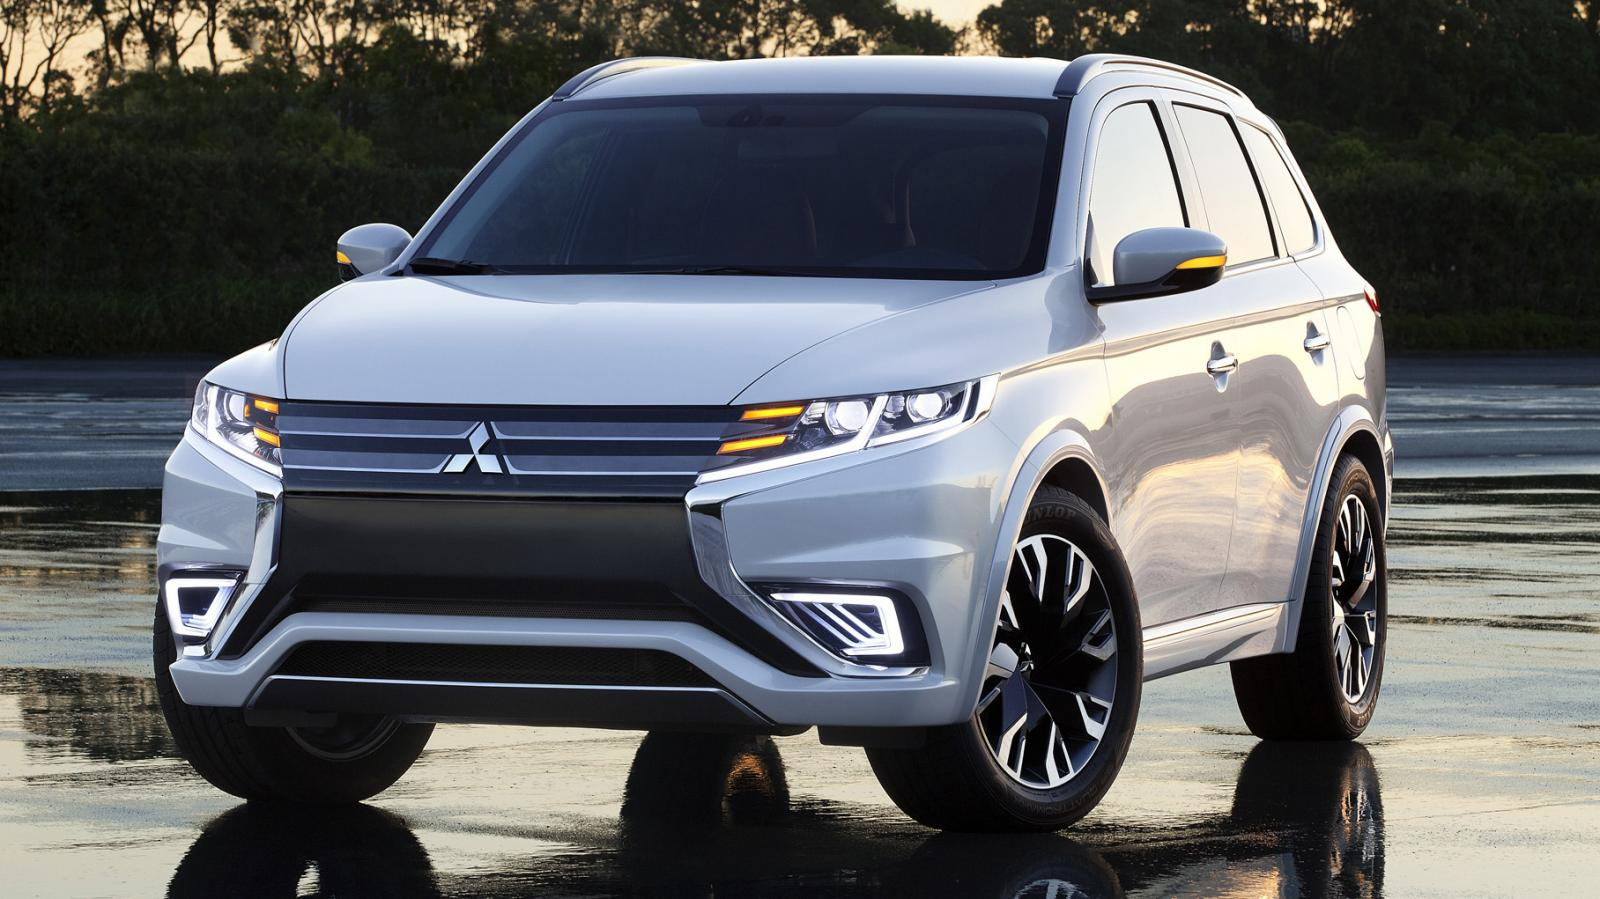 mitsubishi-outlander-phev-concept-s-previewed-ahead-of-paris-motor-show_3